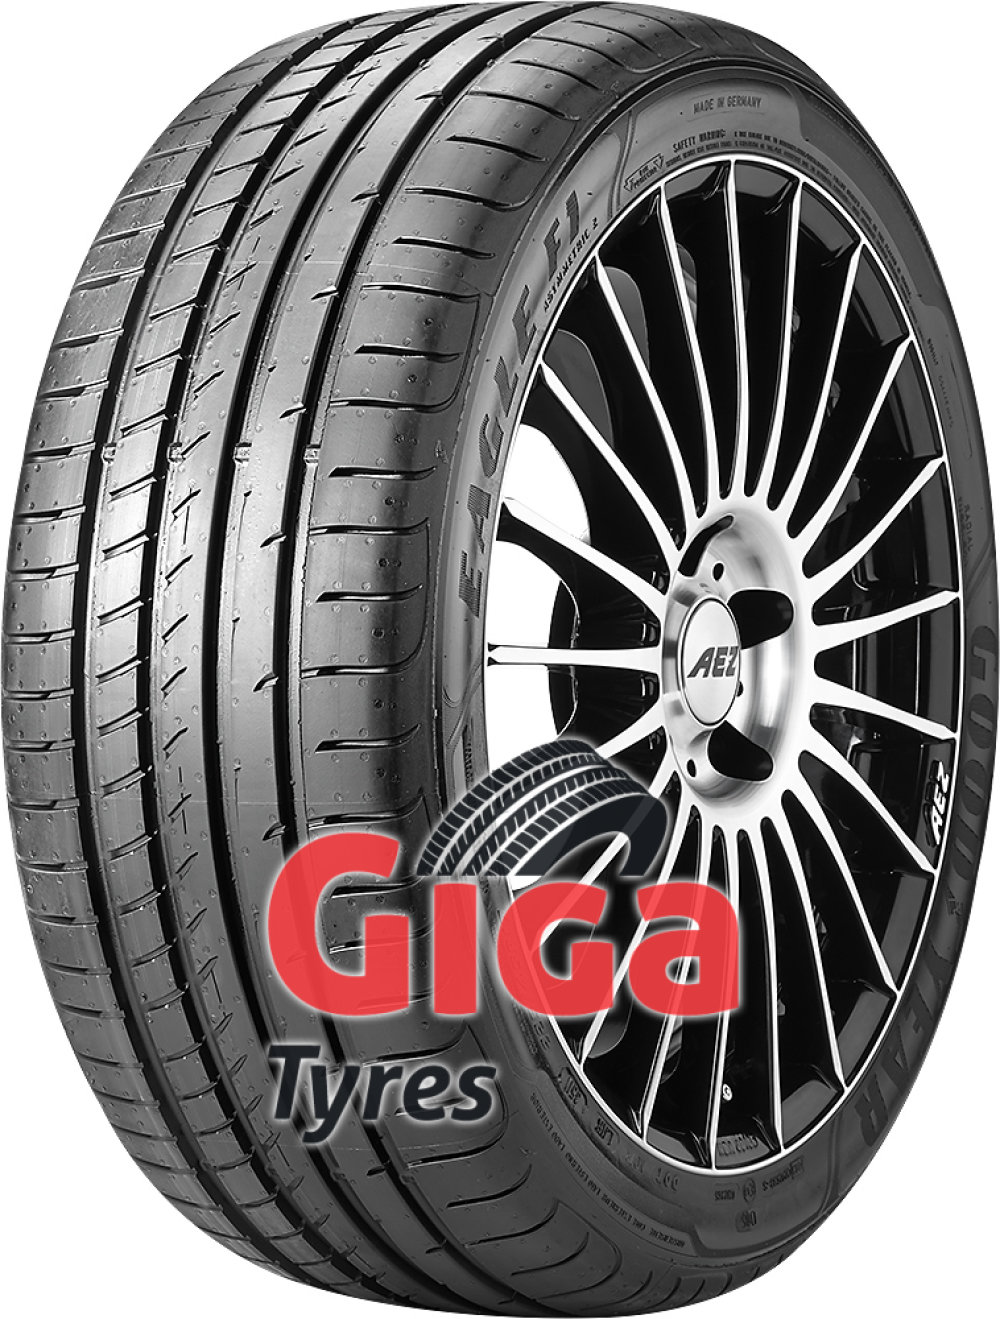 Goodyear Eagle F1 Asymmetric 2 ( 205/45 R16 83Y with rim protection (MFS) )